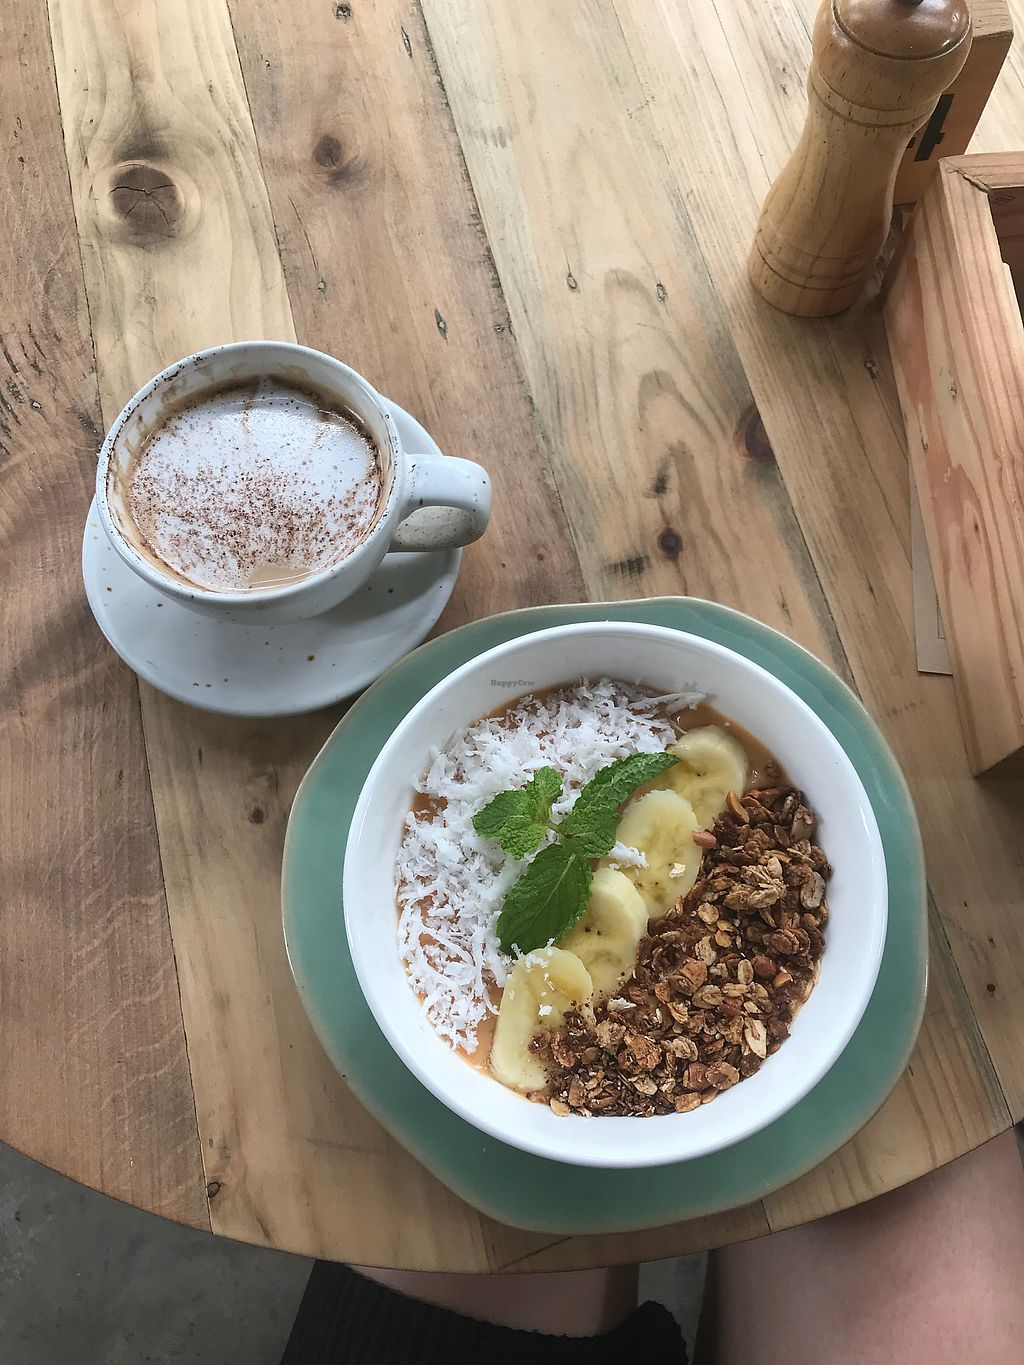 """Photo of The Factory Cafe  by <a href=""""/members/profile/SofiaLindwall"""">SofiaLindwall</a> <br/>Smoothiebowl and coconut cappuccino <br/> March 17, 2018  - <a href='/contact/abuse/image/101030/371667'>Report</a>"""